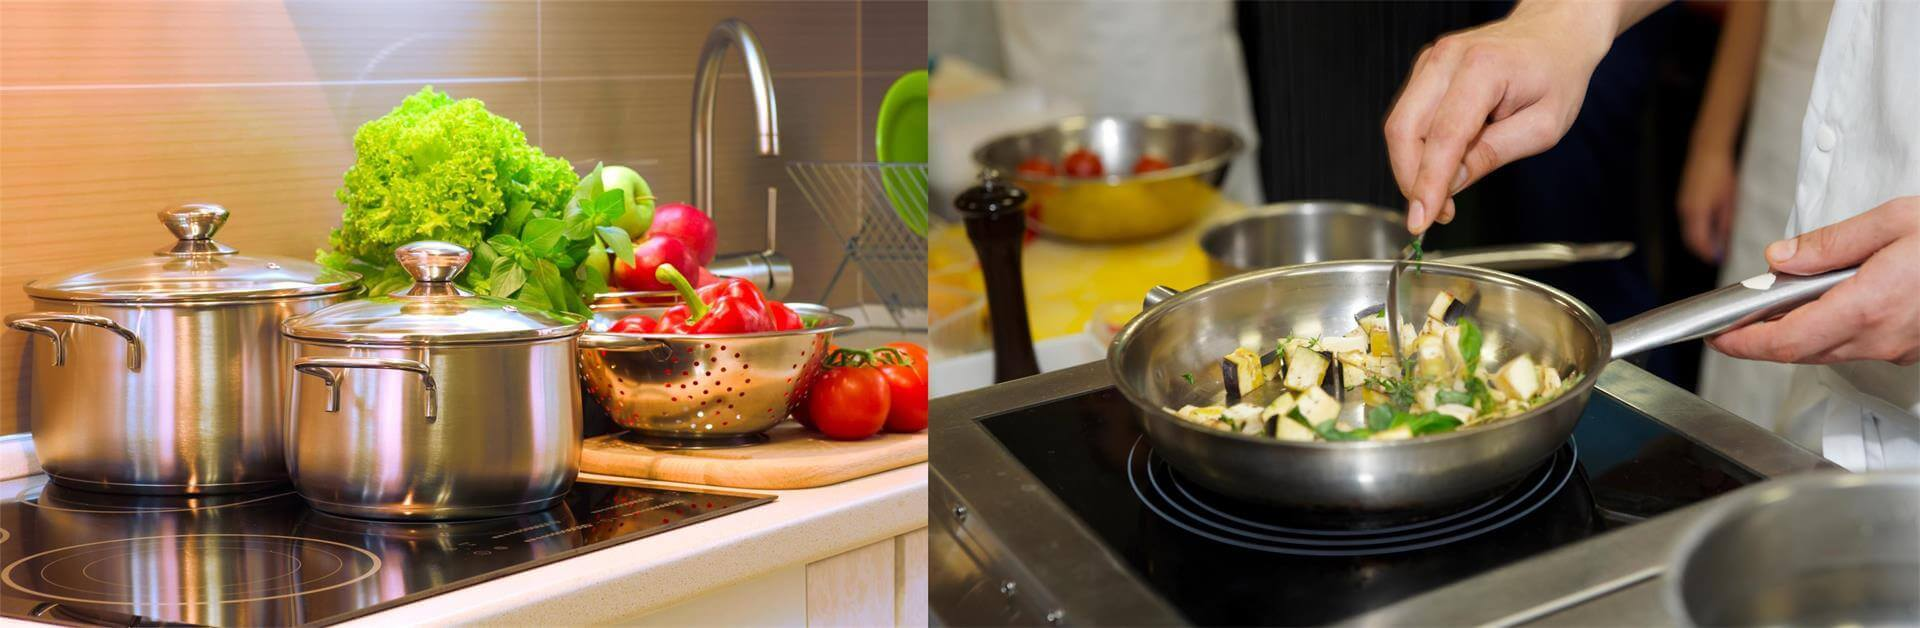 stainless steel cookware for kitchen cooking